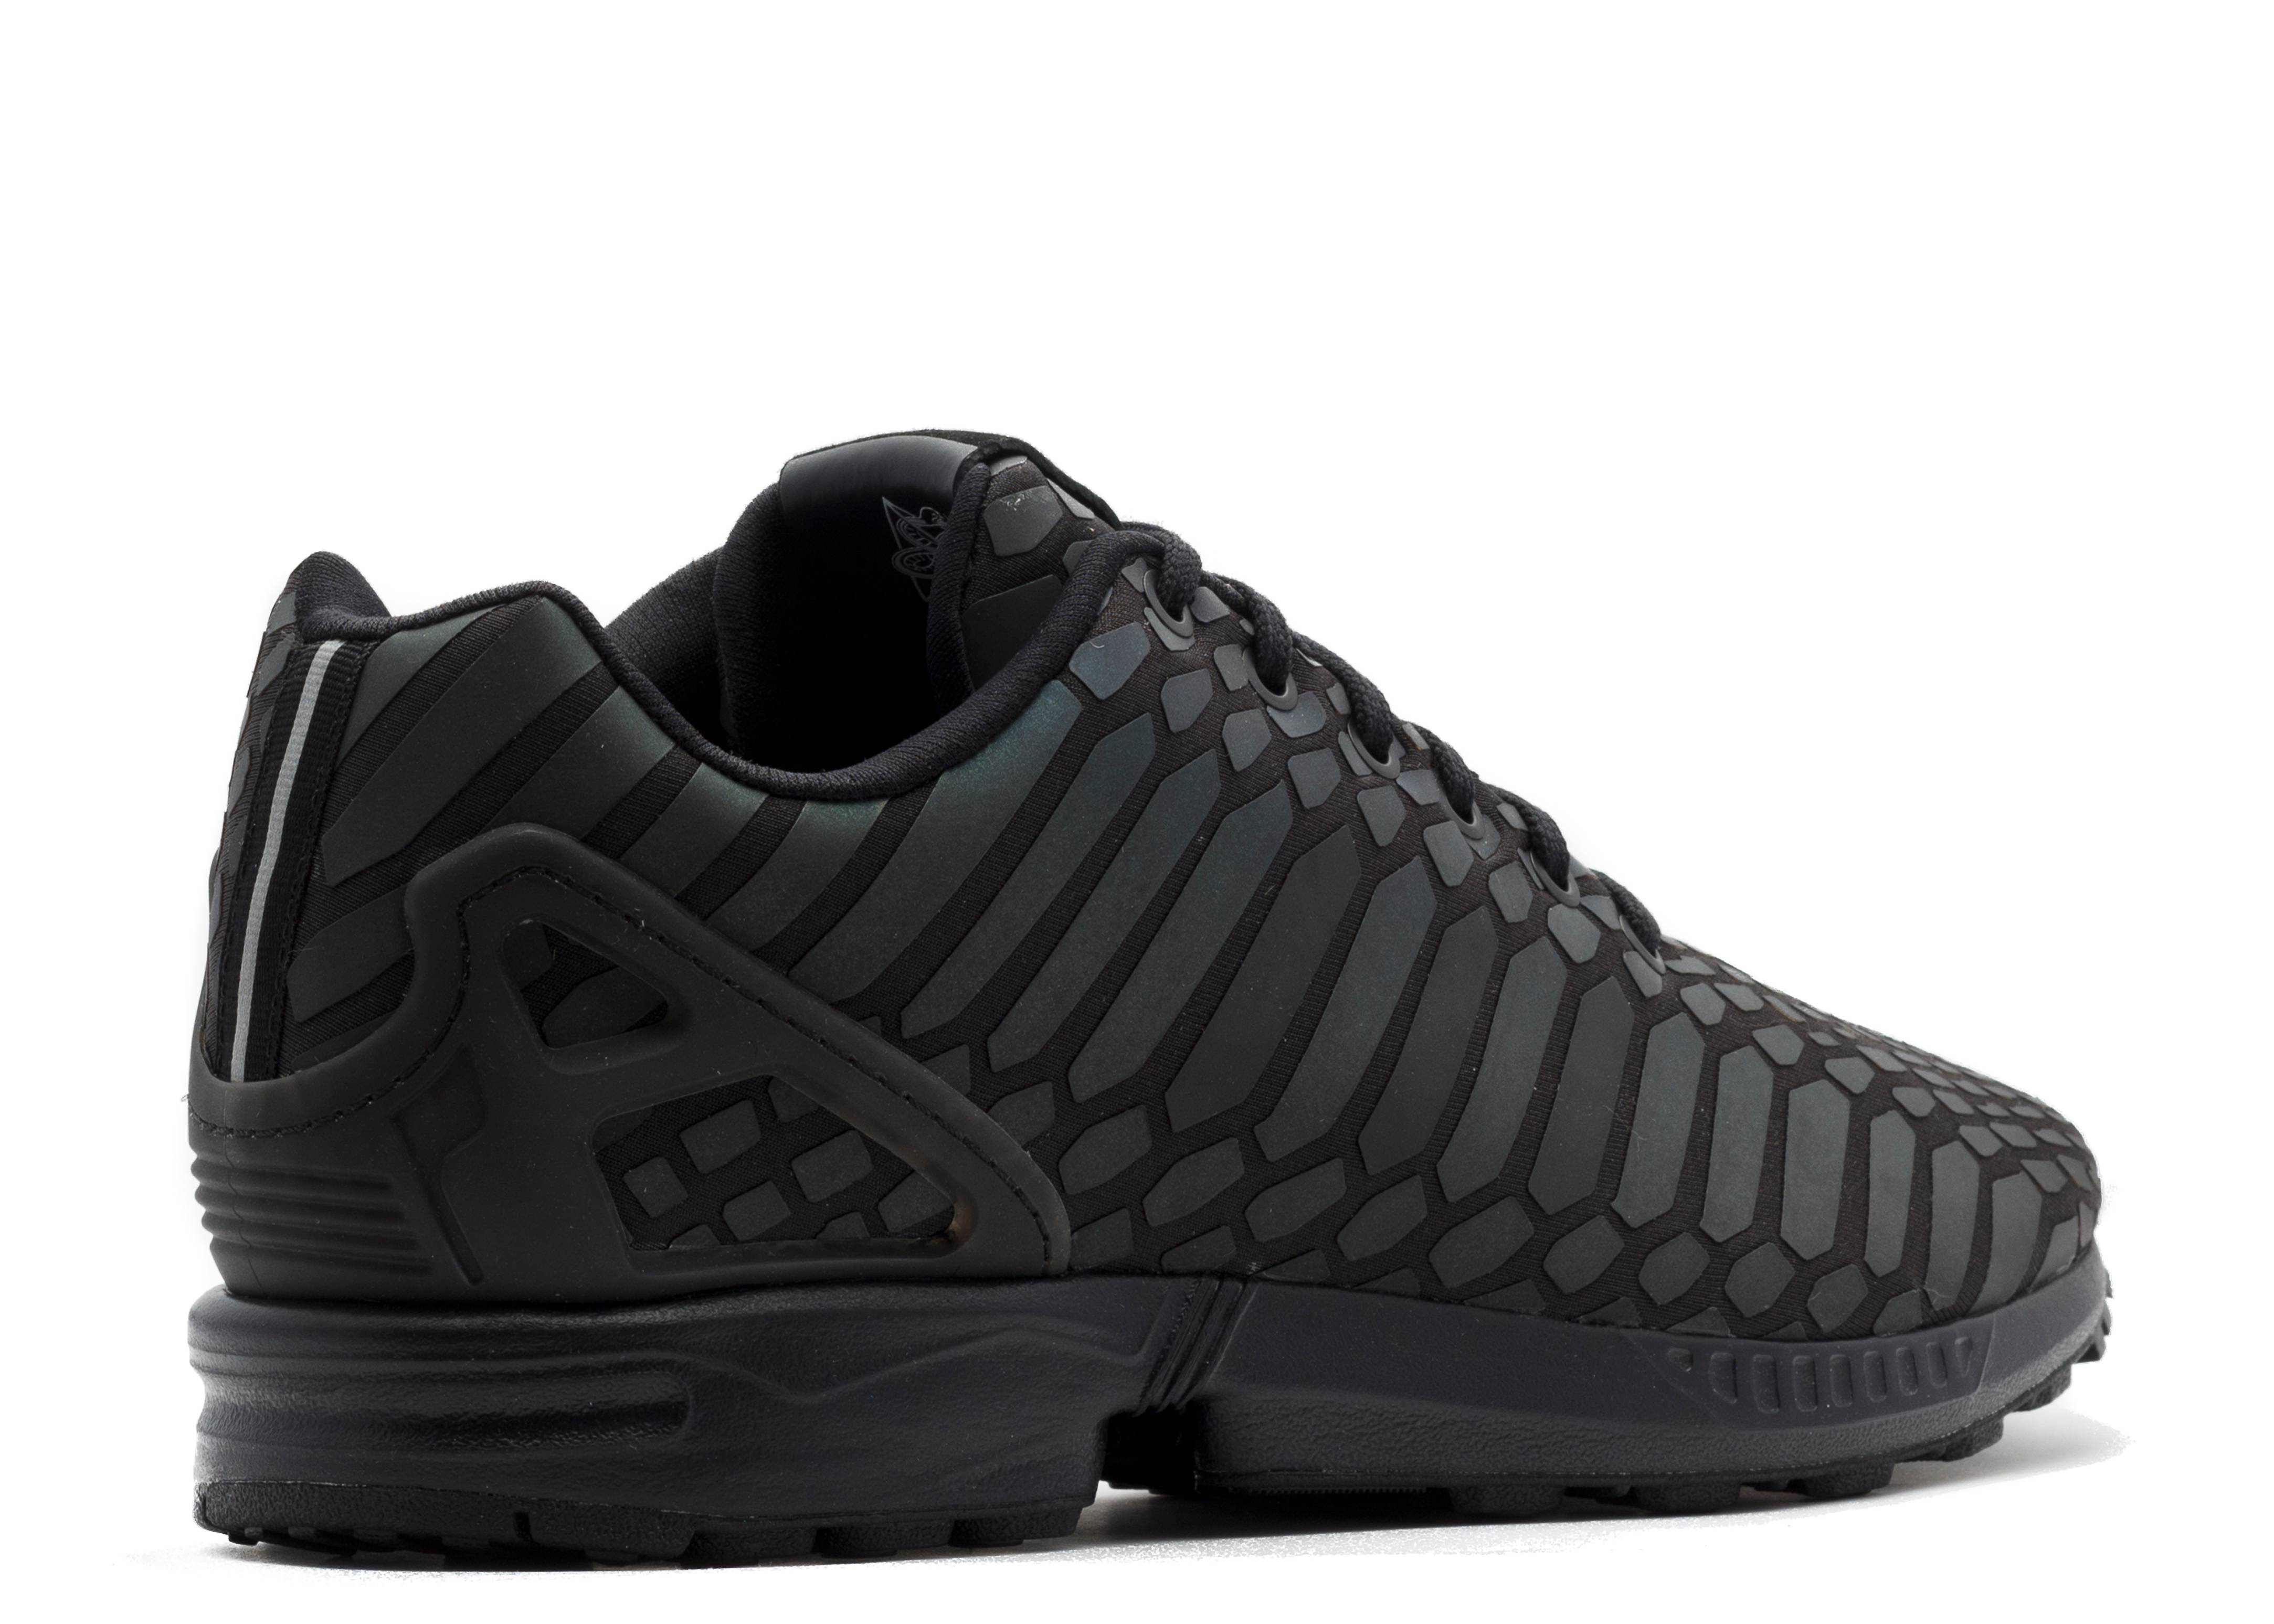 zx flux adidas aq7418 supcol cblack cblack flight club. Black Bedroom Furniture Sets. Home Design Ideas